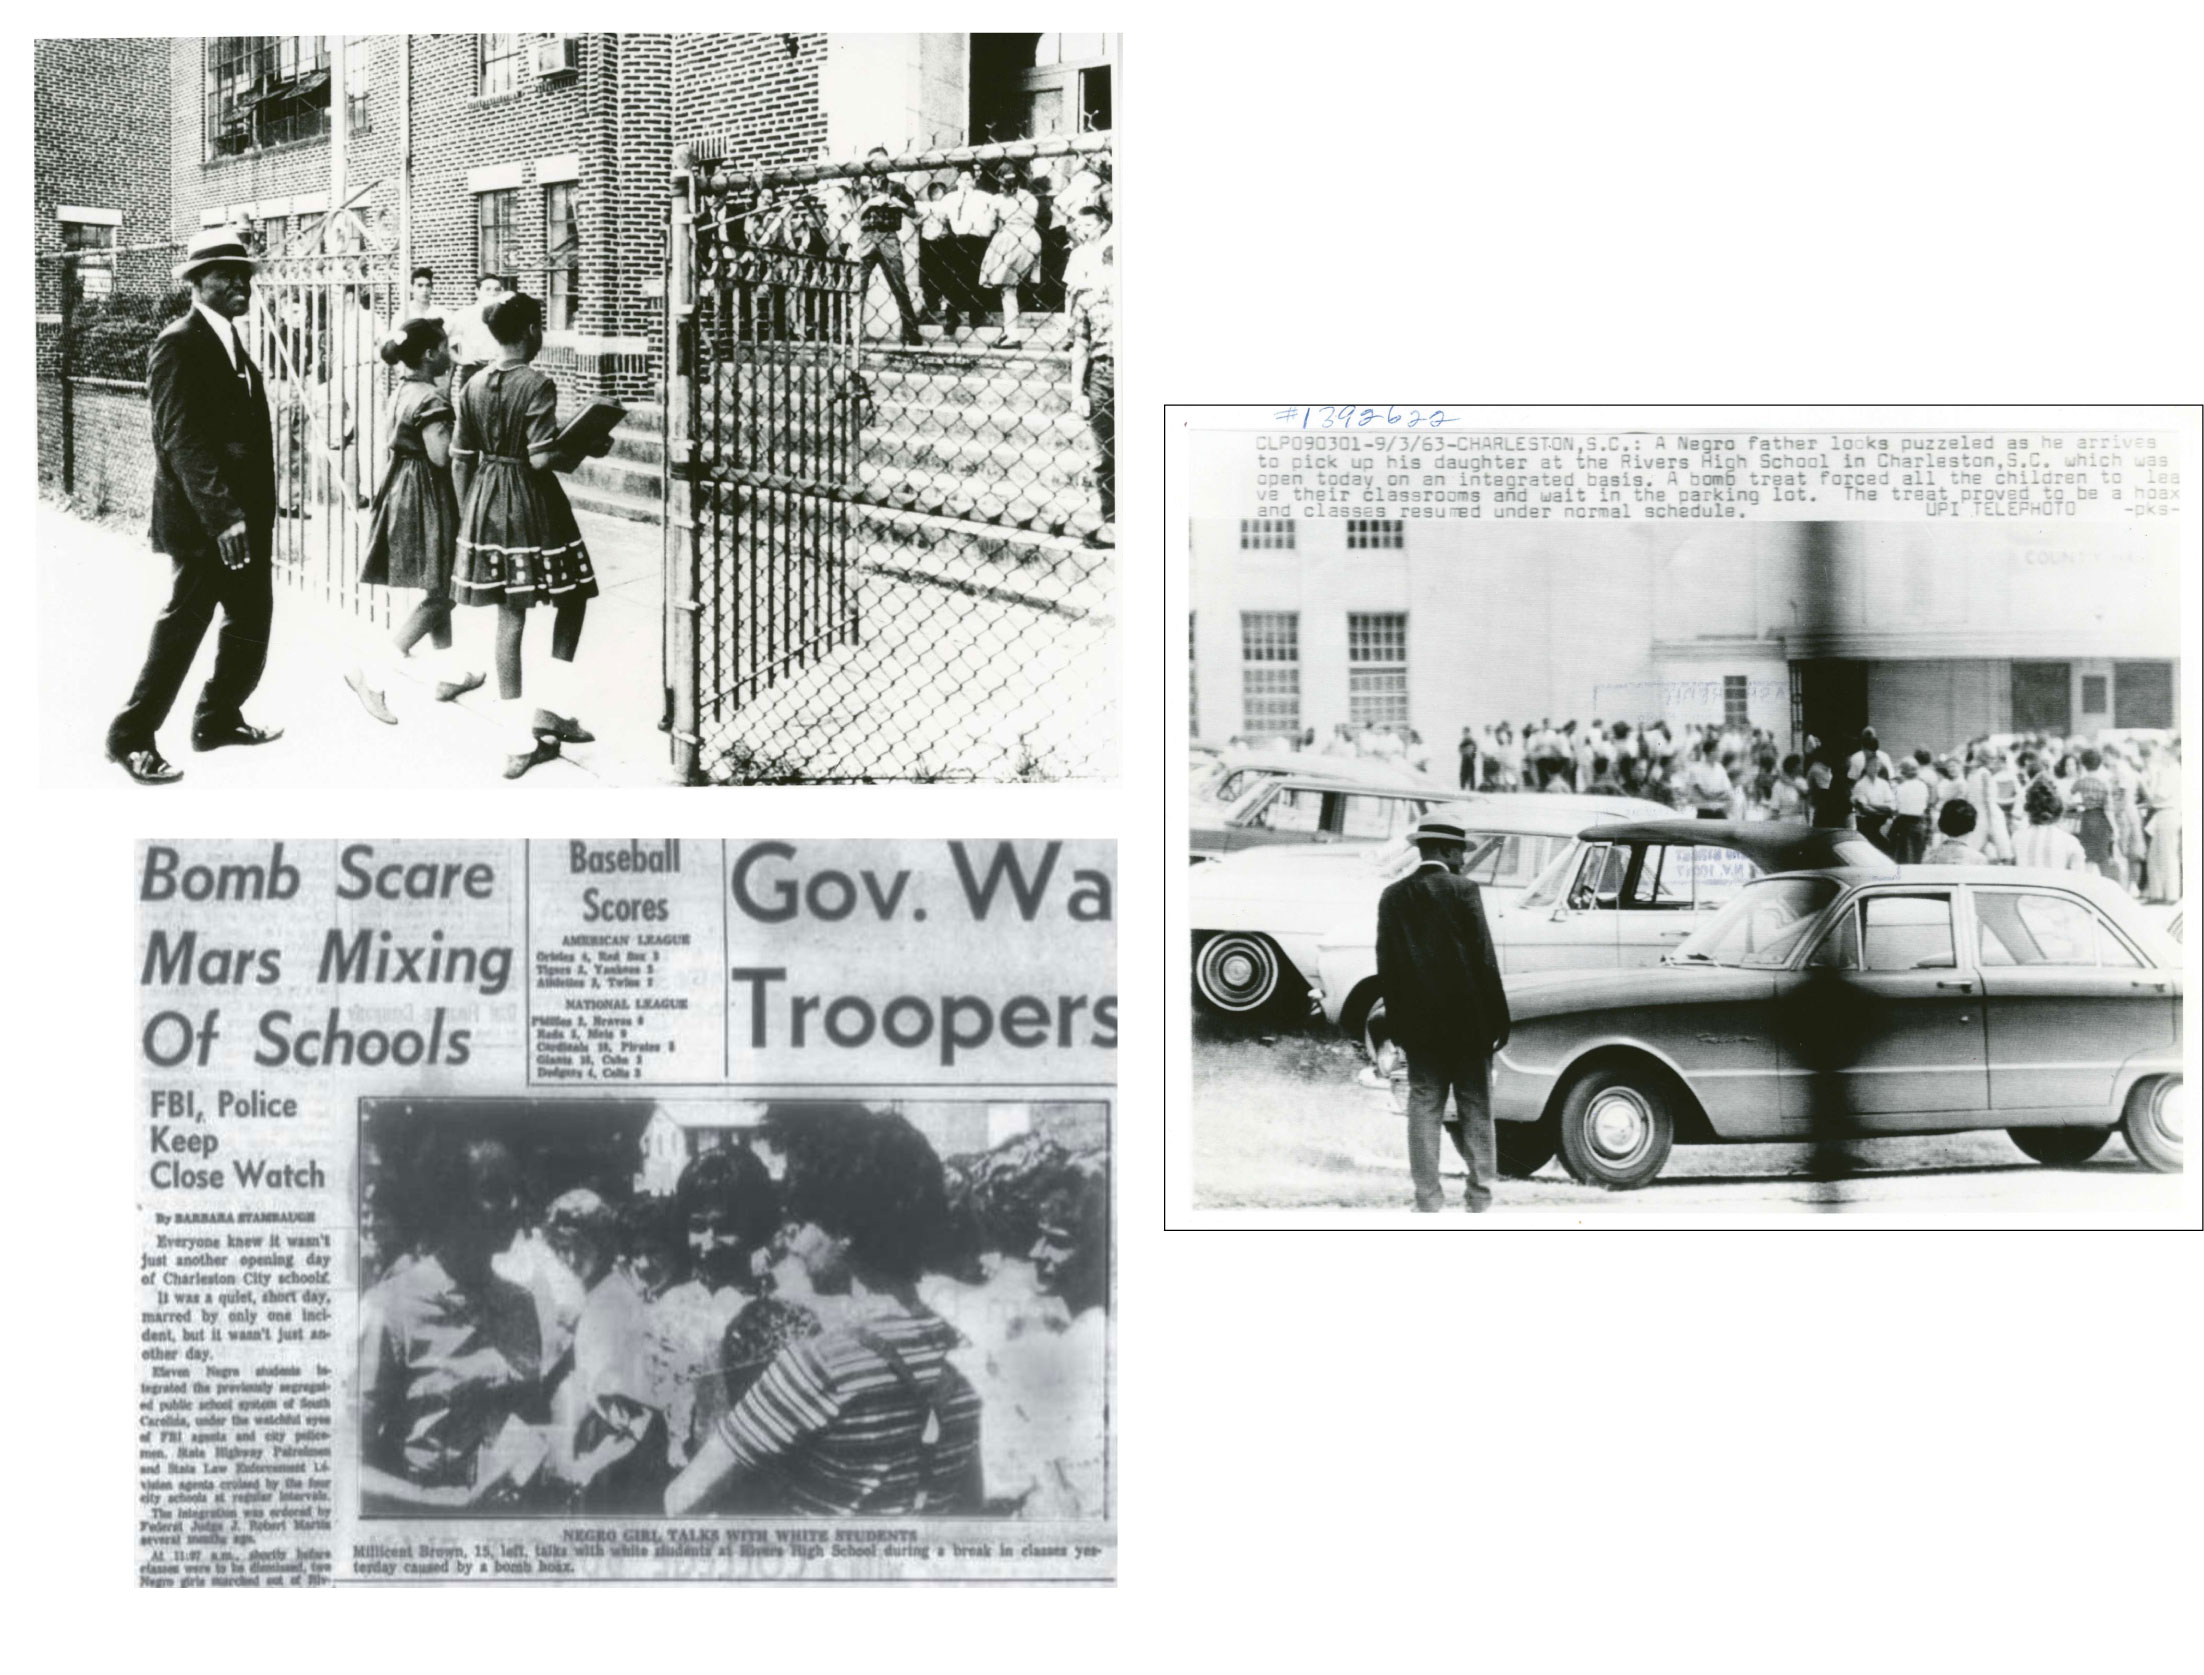 (Counterclockwise from left) The front page of The News and Courier, as well as newspapers across the country, featured Millicent Brown's first day at Rivers High School, during which three bomb threats forced students to be evacuated into the parking lot. Further down King Street, Clarence Ford escorted his daughter, Barbara, and Oveta Glover into the formerly all-white James Simons Elementary School.